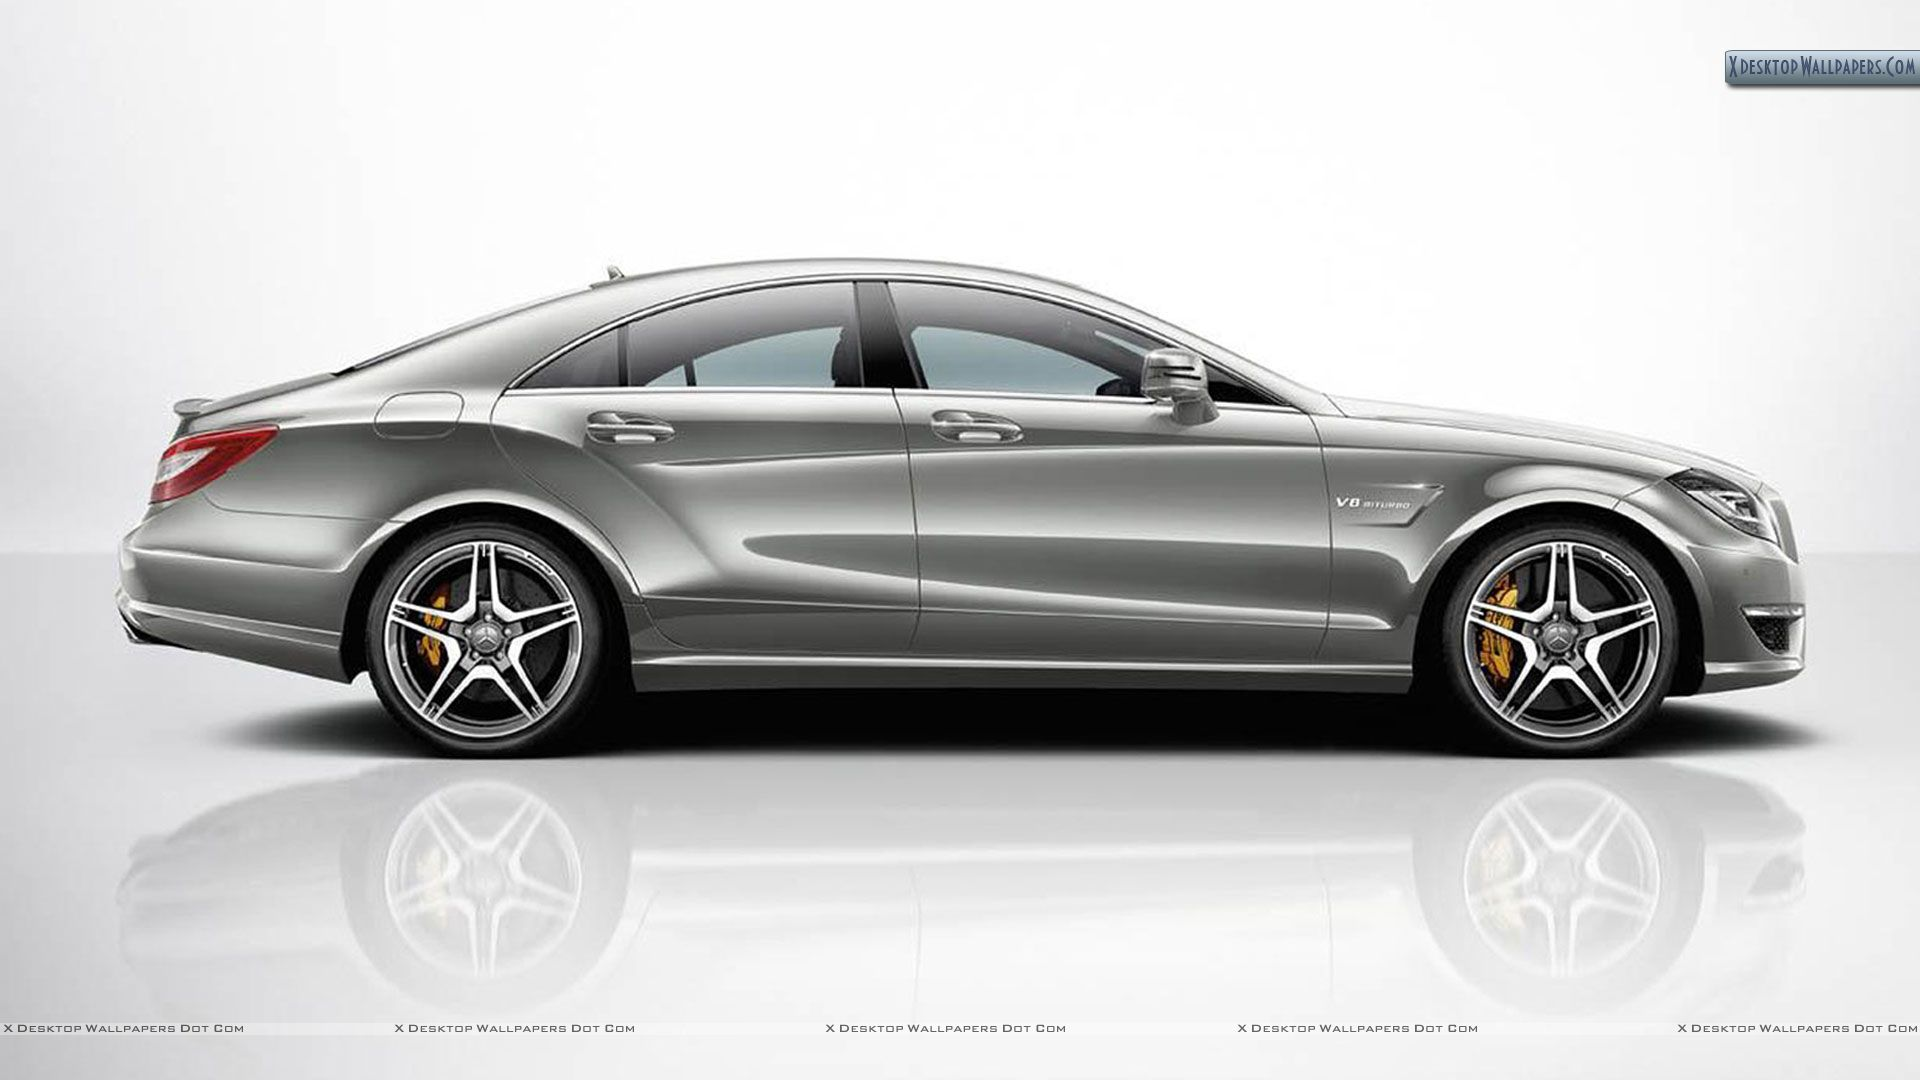 Silver 2012 mercedes benz cls63 amg side pose wallpaper for 2012 mercedes benz cls